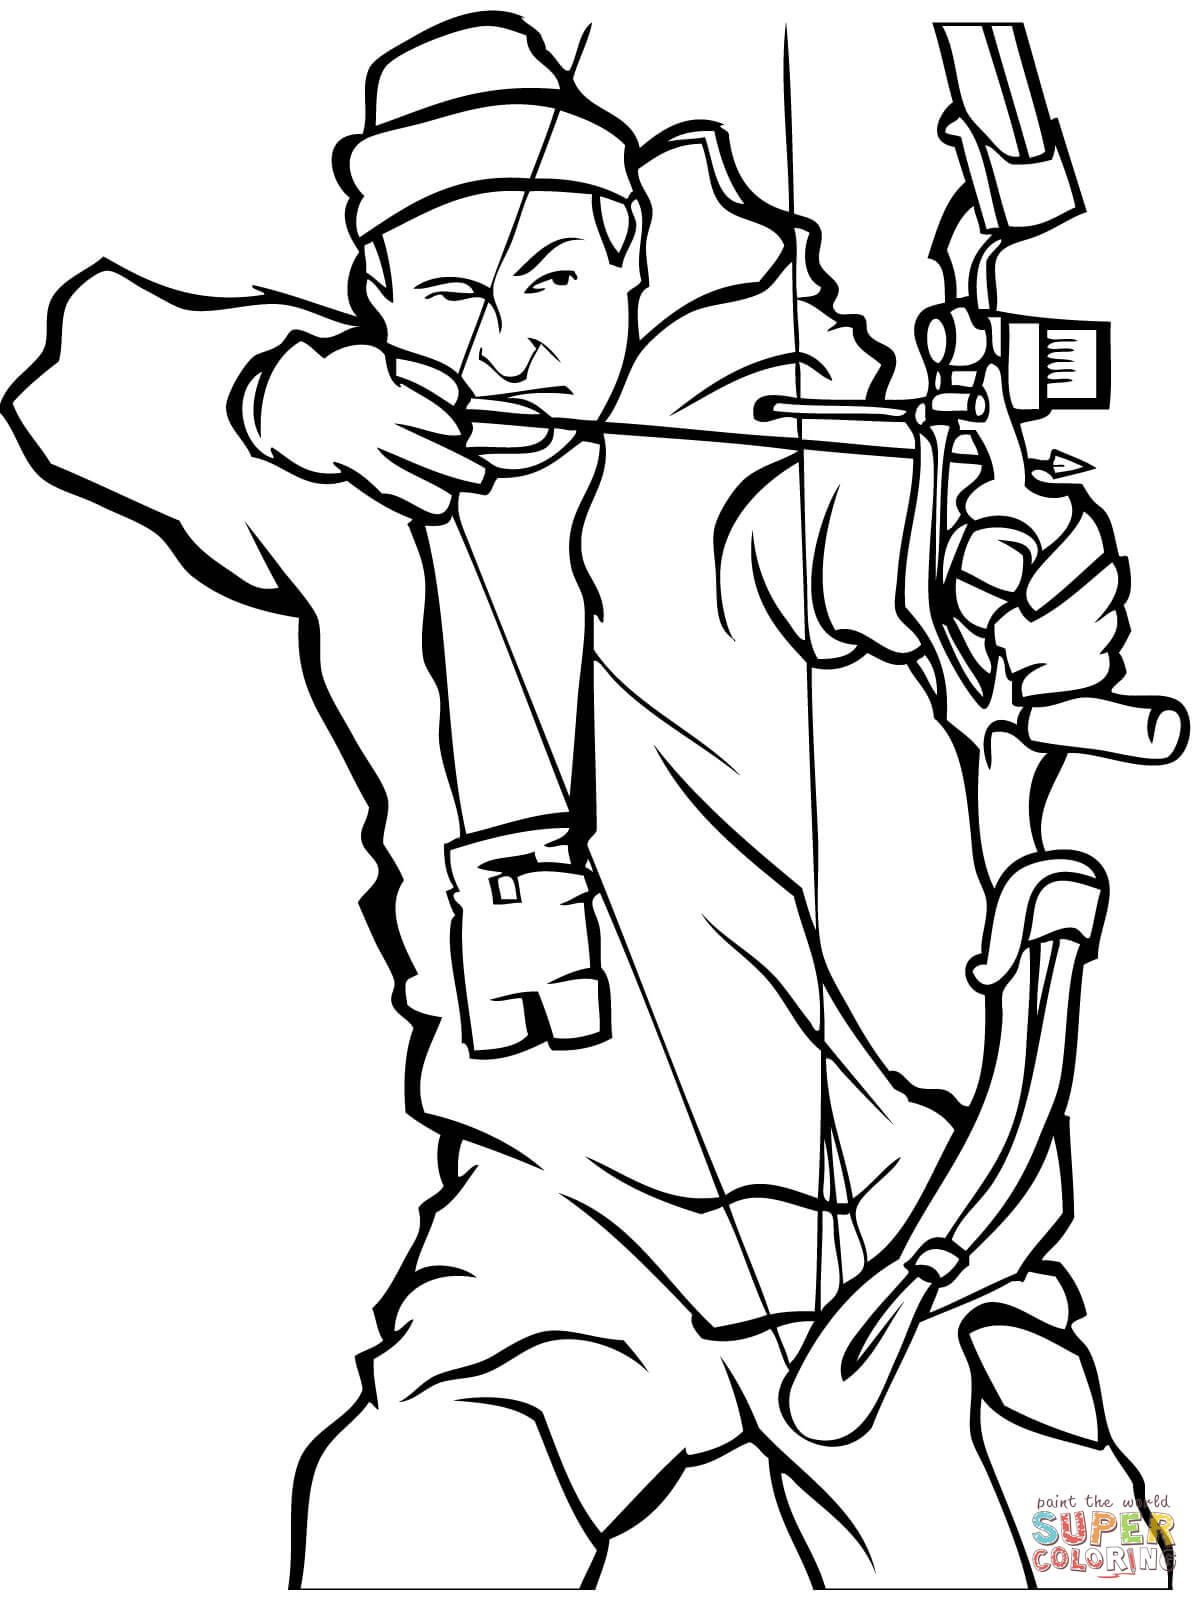 Free Hunting Coloring Pages With Bow Hunting Page  Coloring For